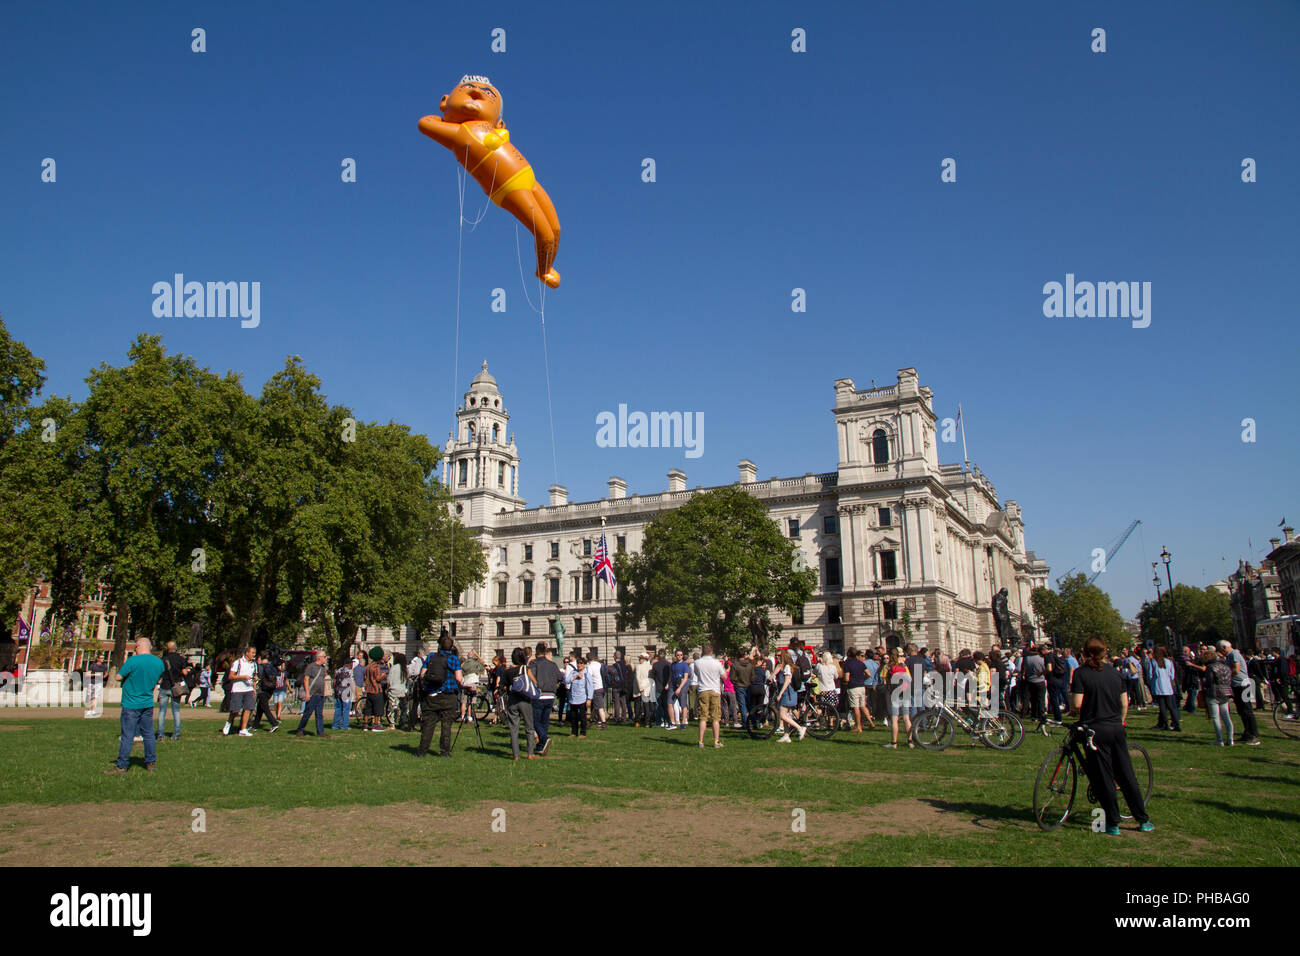 A giant balloon depicting the current London Mayor Sadiq Khan wearing a bright yellow bikini being flown over the Houses of Parliament in Westminster. - Stock Image